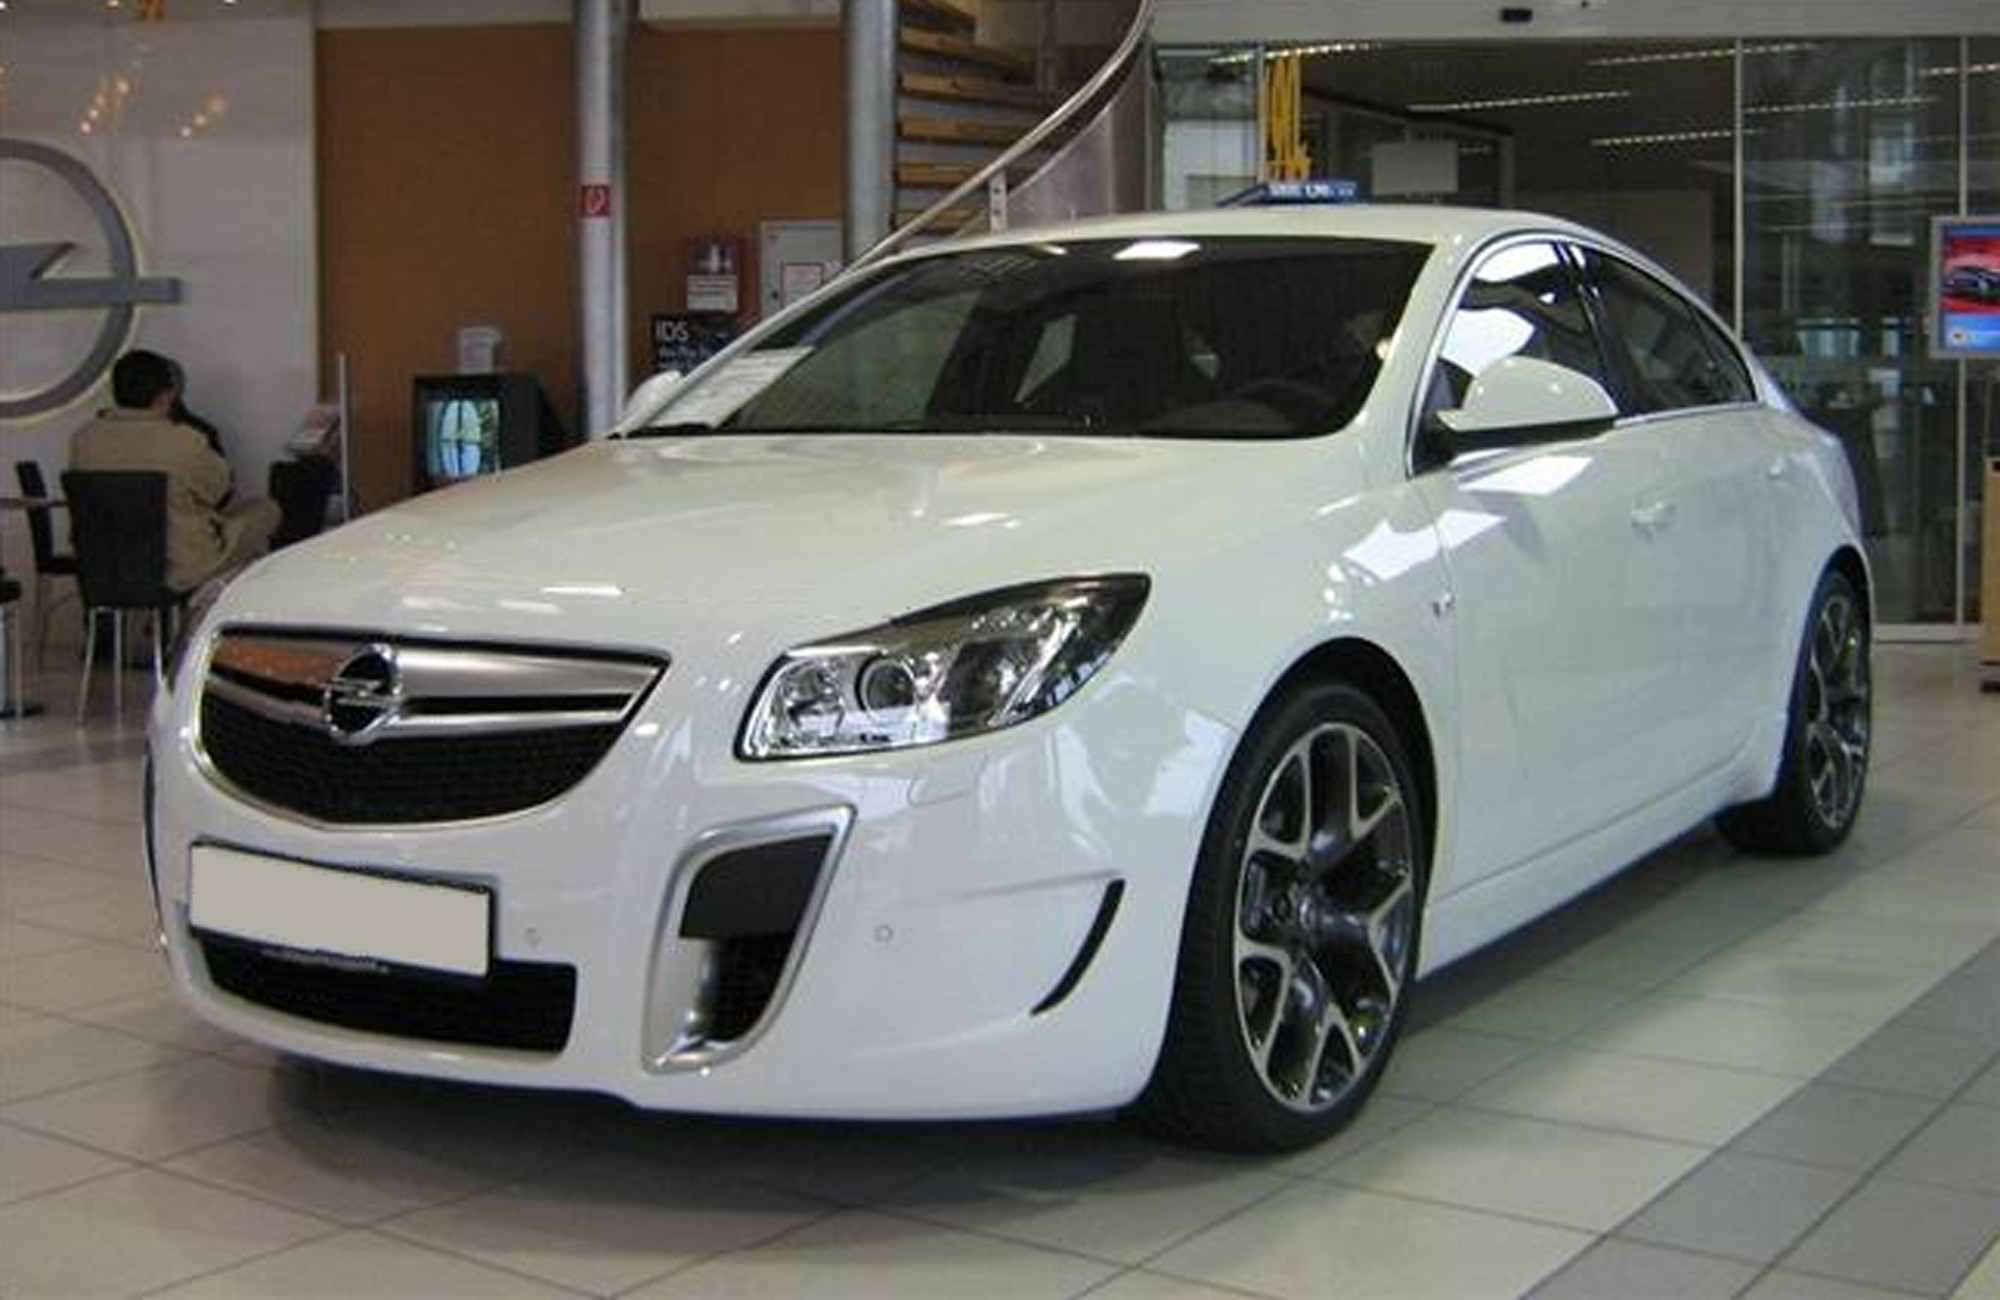 File:Opel Insignia OPC touring.jpg - Wikimedia Commons